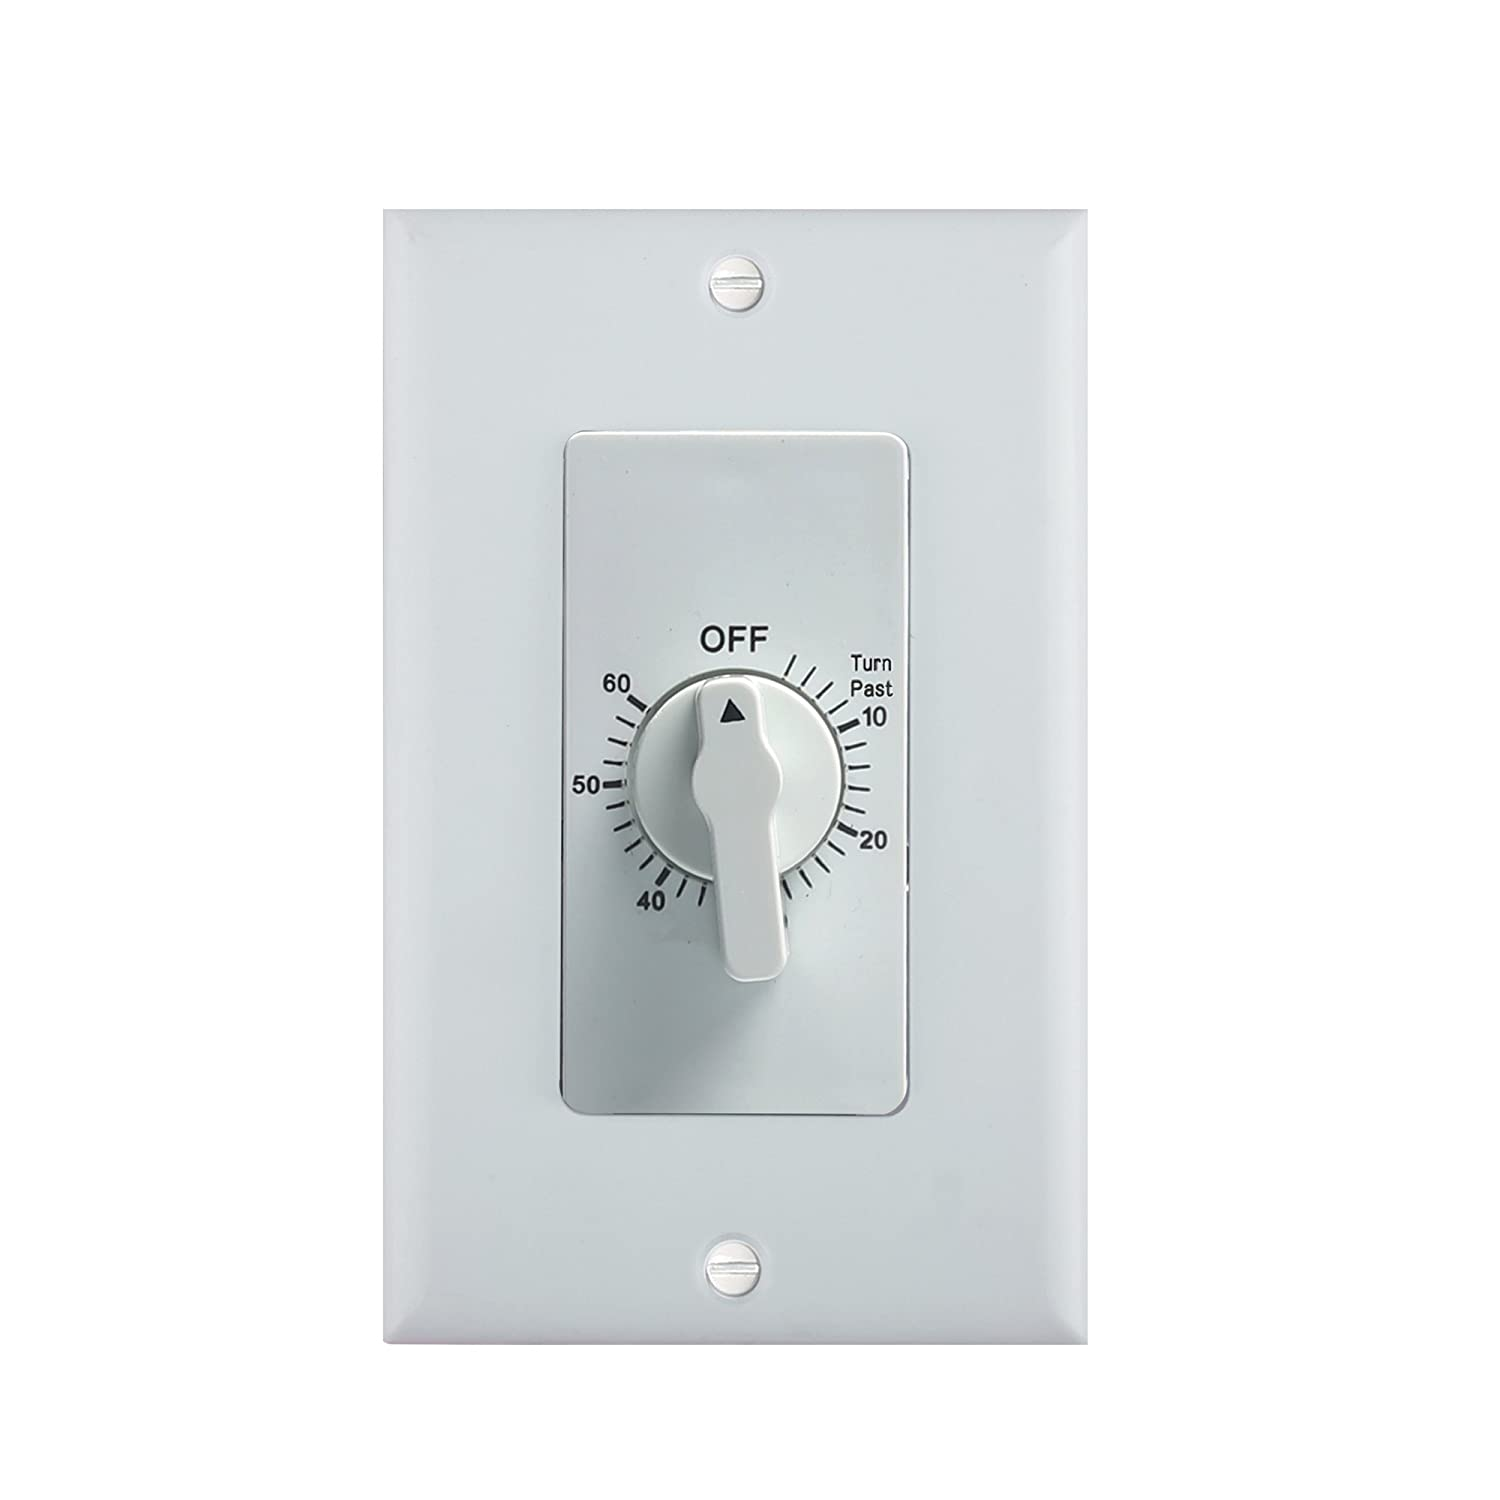 Century Heavy Duty 60-Minute In-Wall Spring Loaded Countdown Timer, Mechanical Switch, 2 Free Plate (White and Silver Metallic)